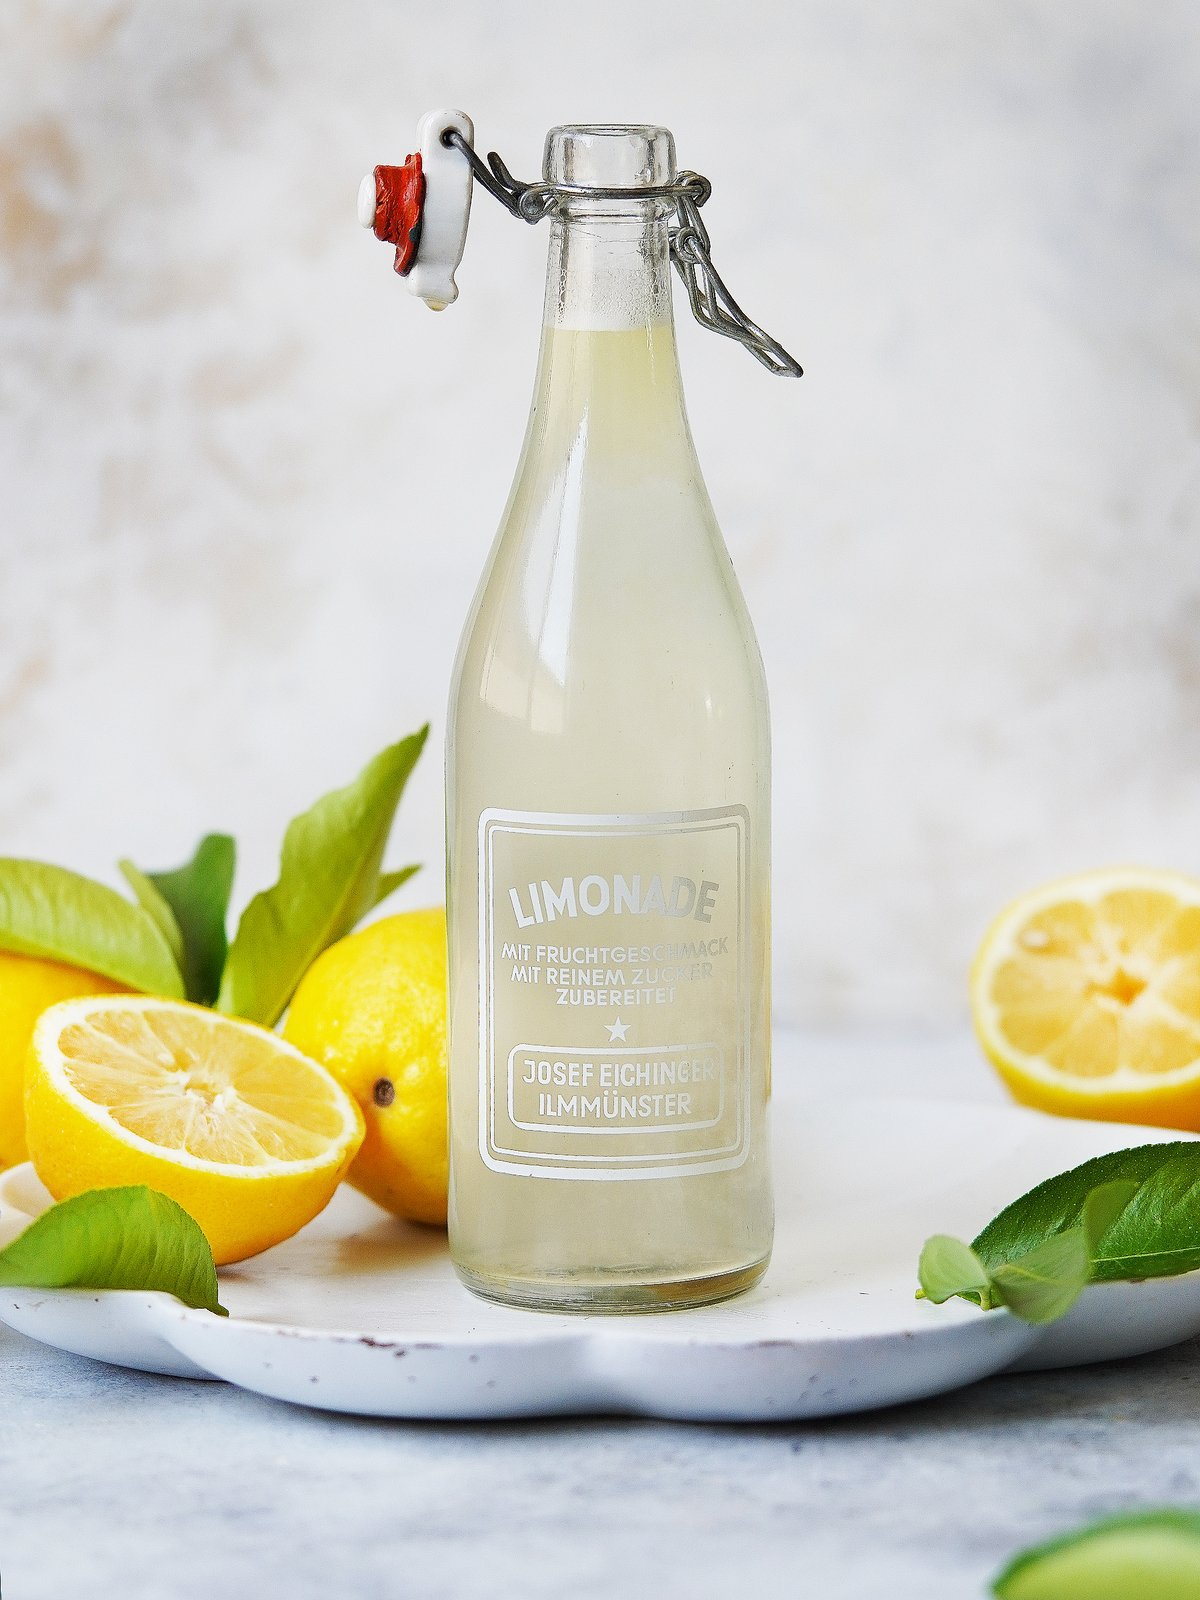 Limonada in a vintage bottle. Fresh lemons on the side